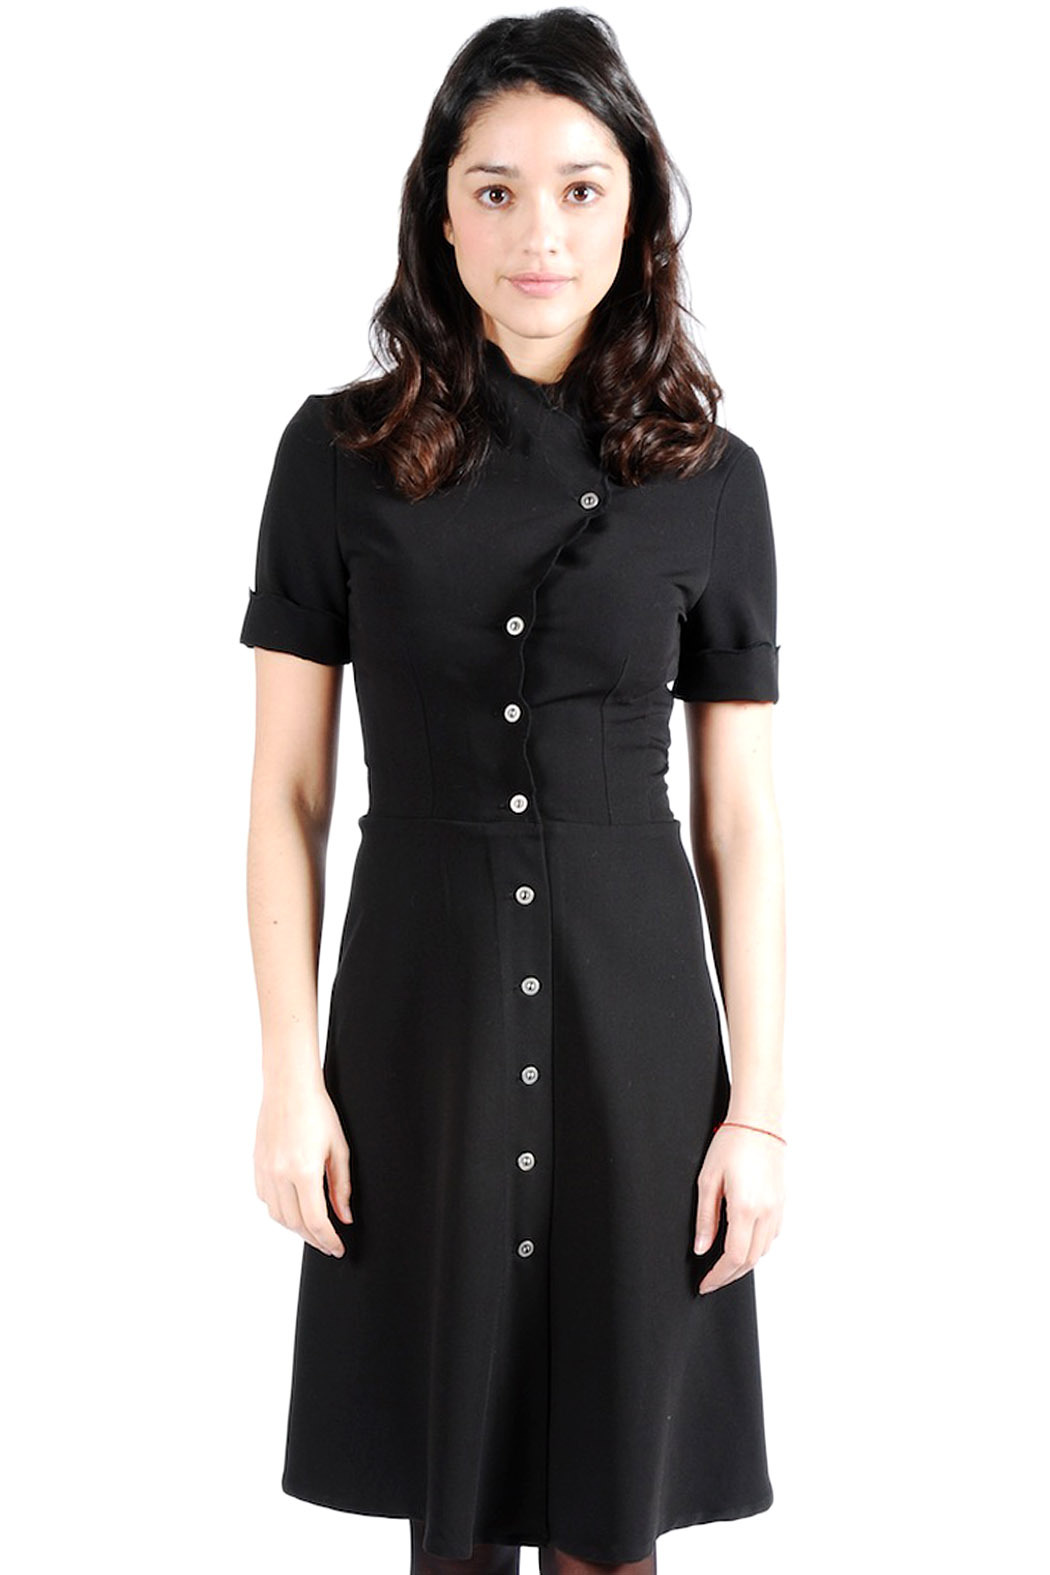 Mimi's Beer Structured Black Button Down Dress from Marais ...